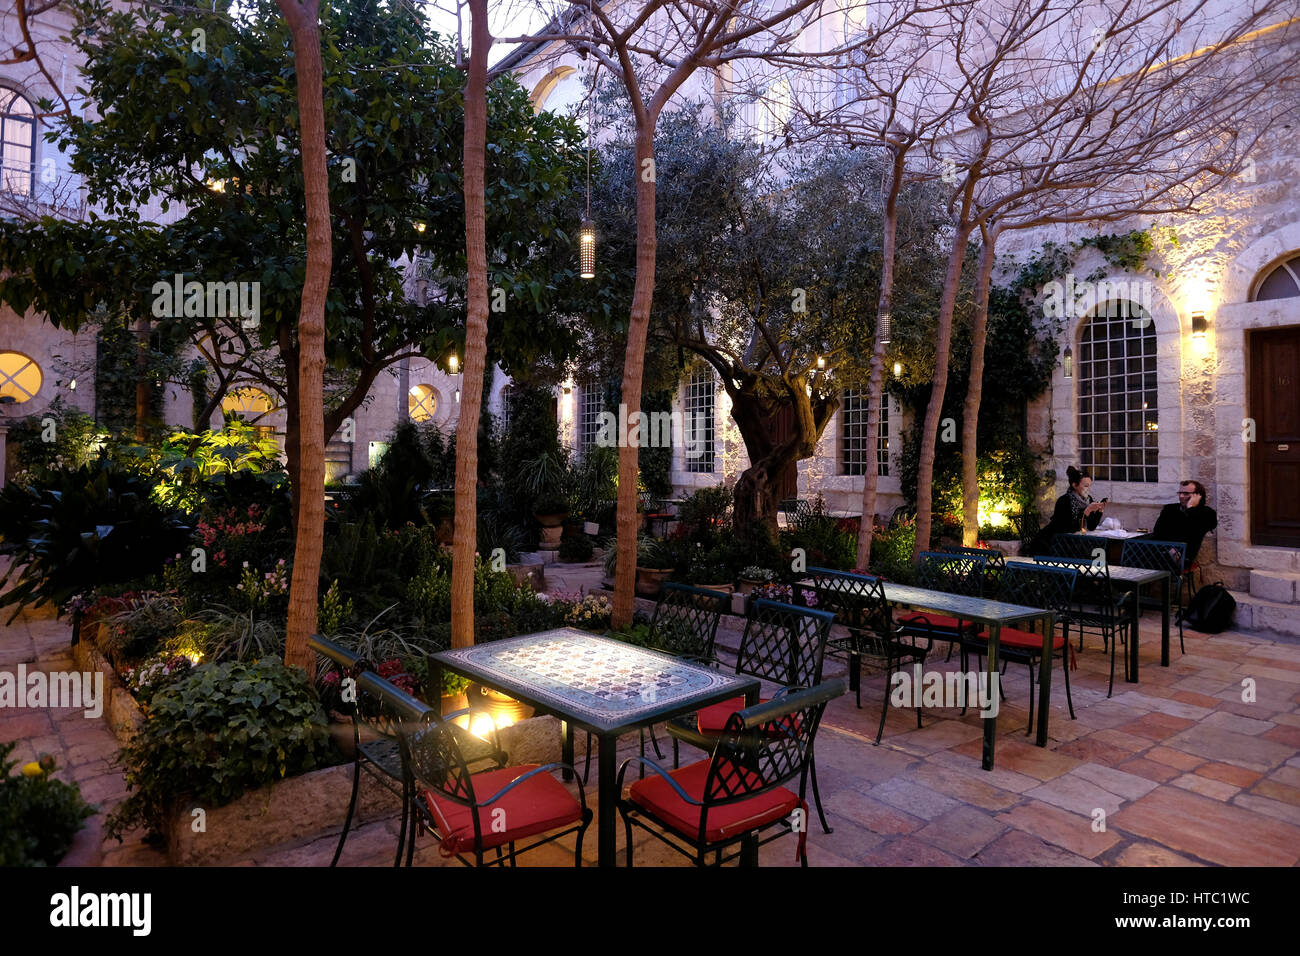 Interior courtyard of the American Colony Hotel located in a historic building which previously housed the utopian - Stock Image